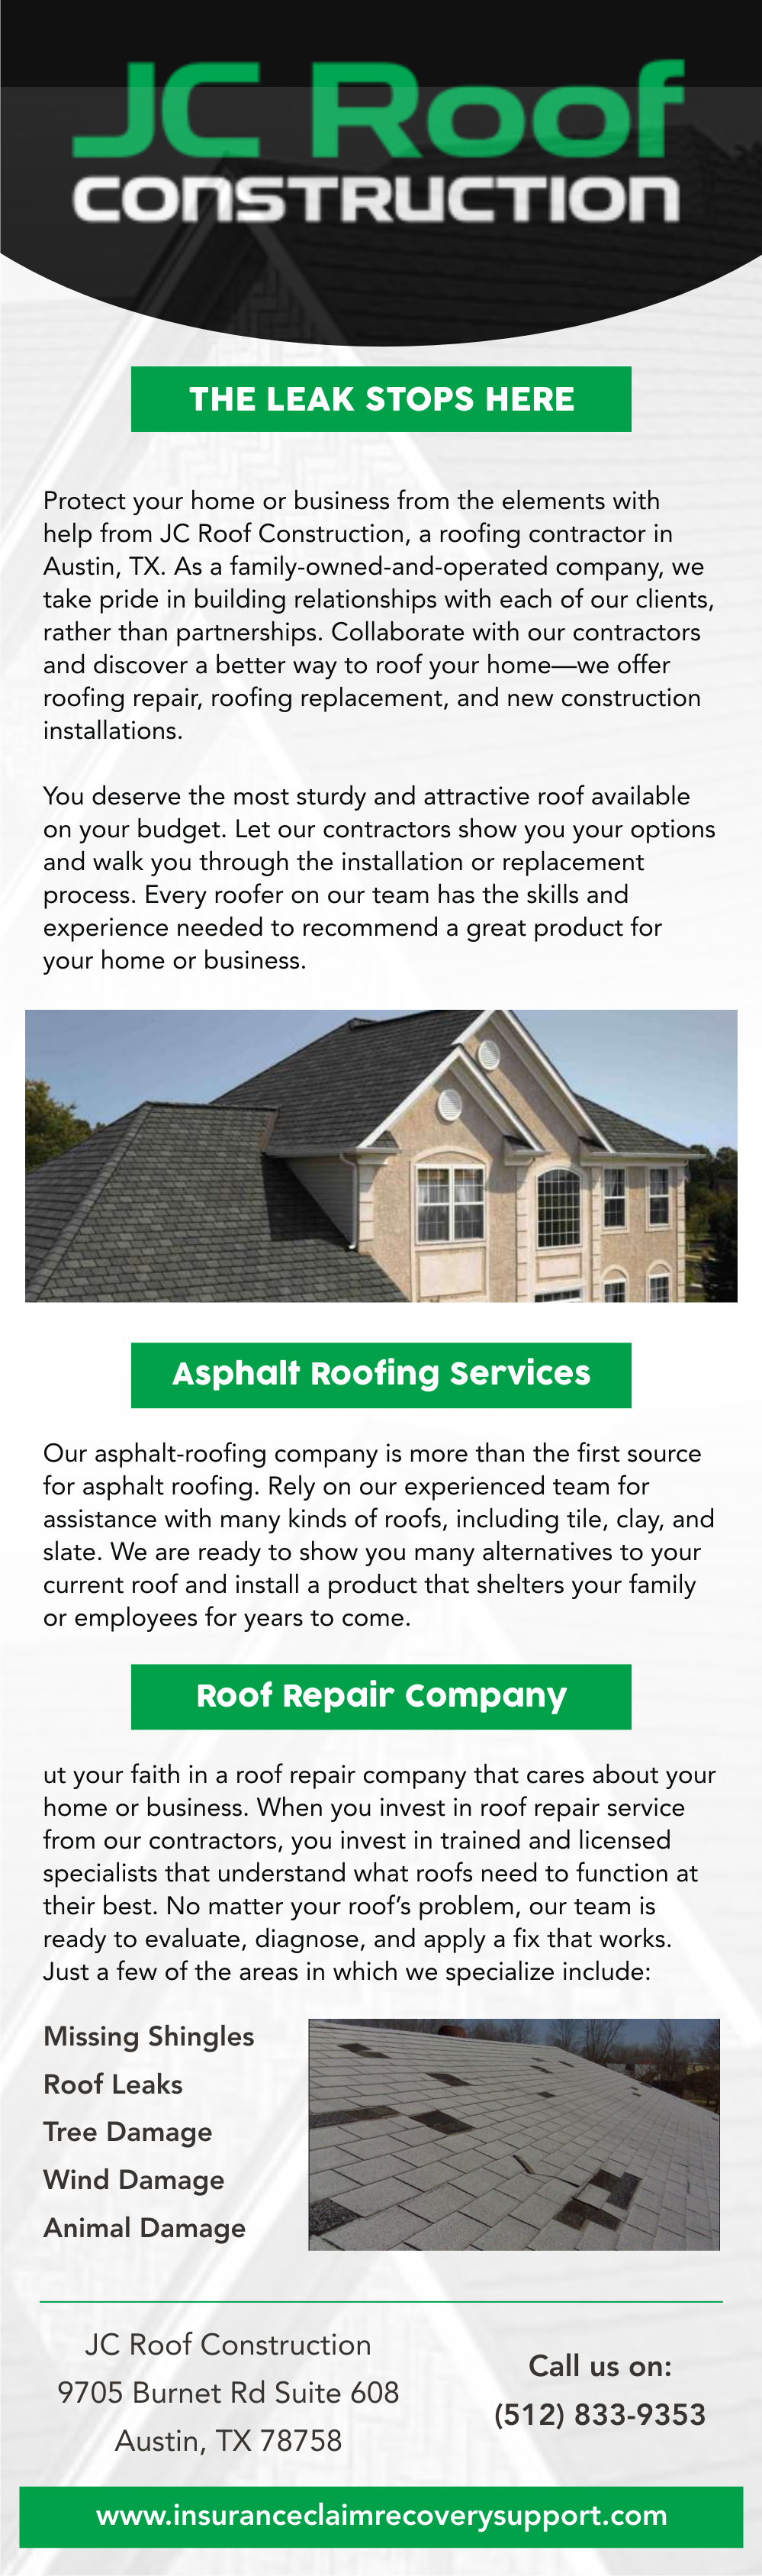 JC Roof Construction LLC (http://jcroofconstruction.com) Are Leading Austin  Roofing Contractors. The Company Offers A Variety Of Roof Installation  Options ...